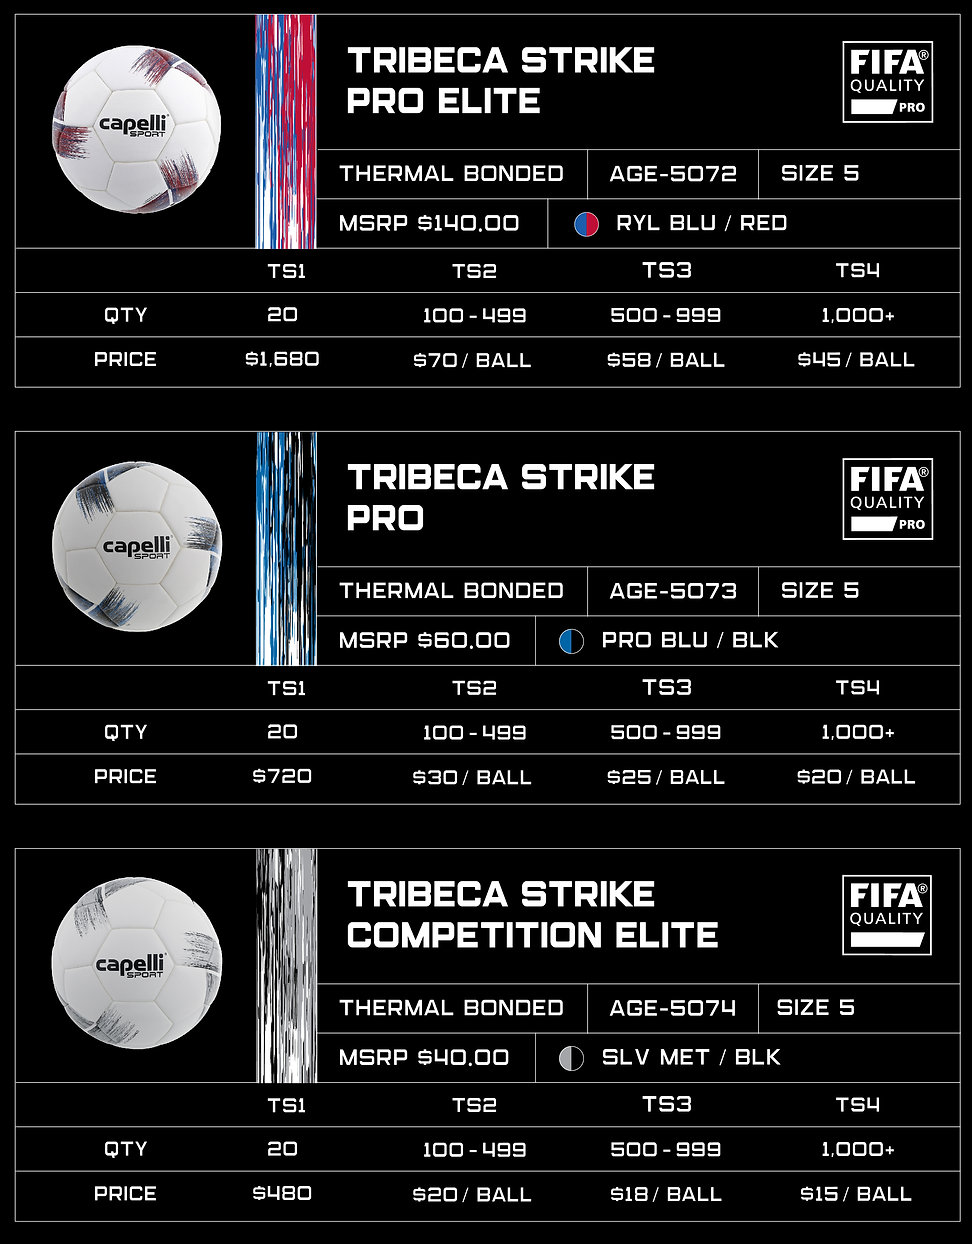 Tribeca Strike Pricing 300x900-01.jpg